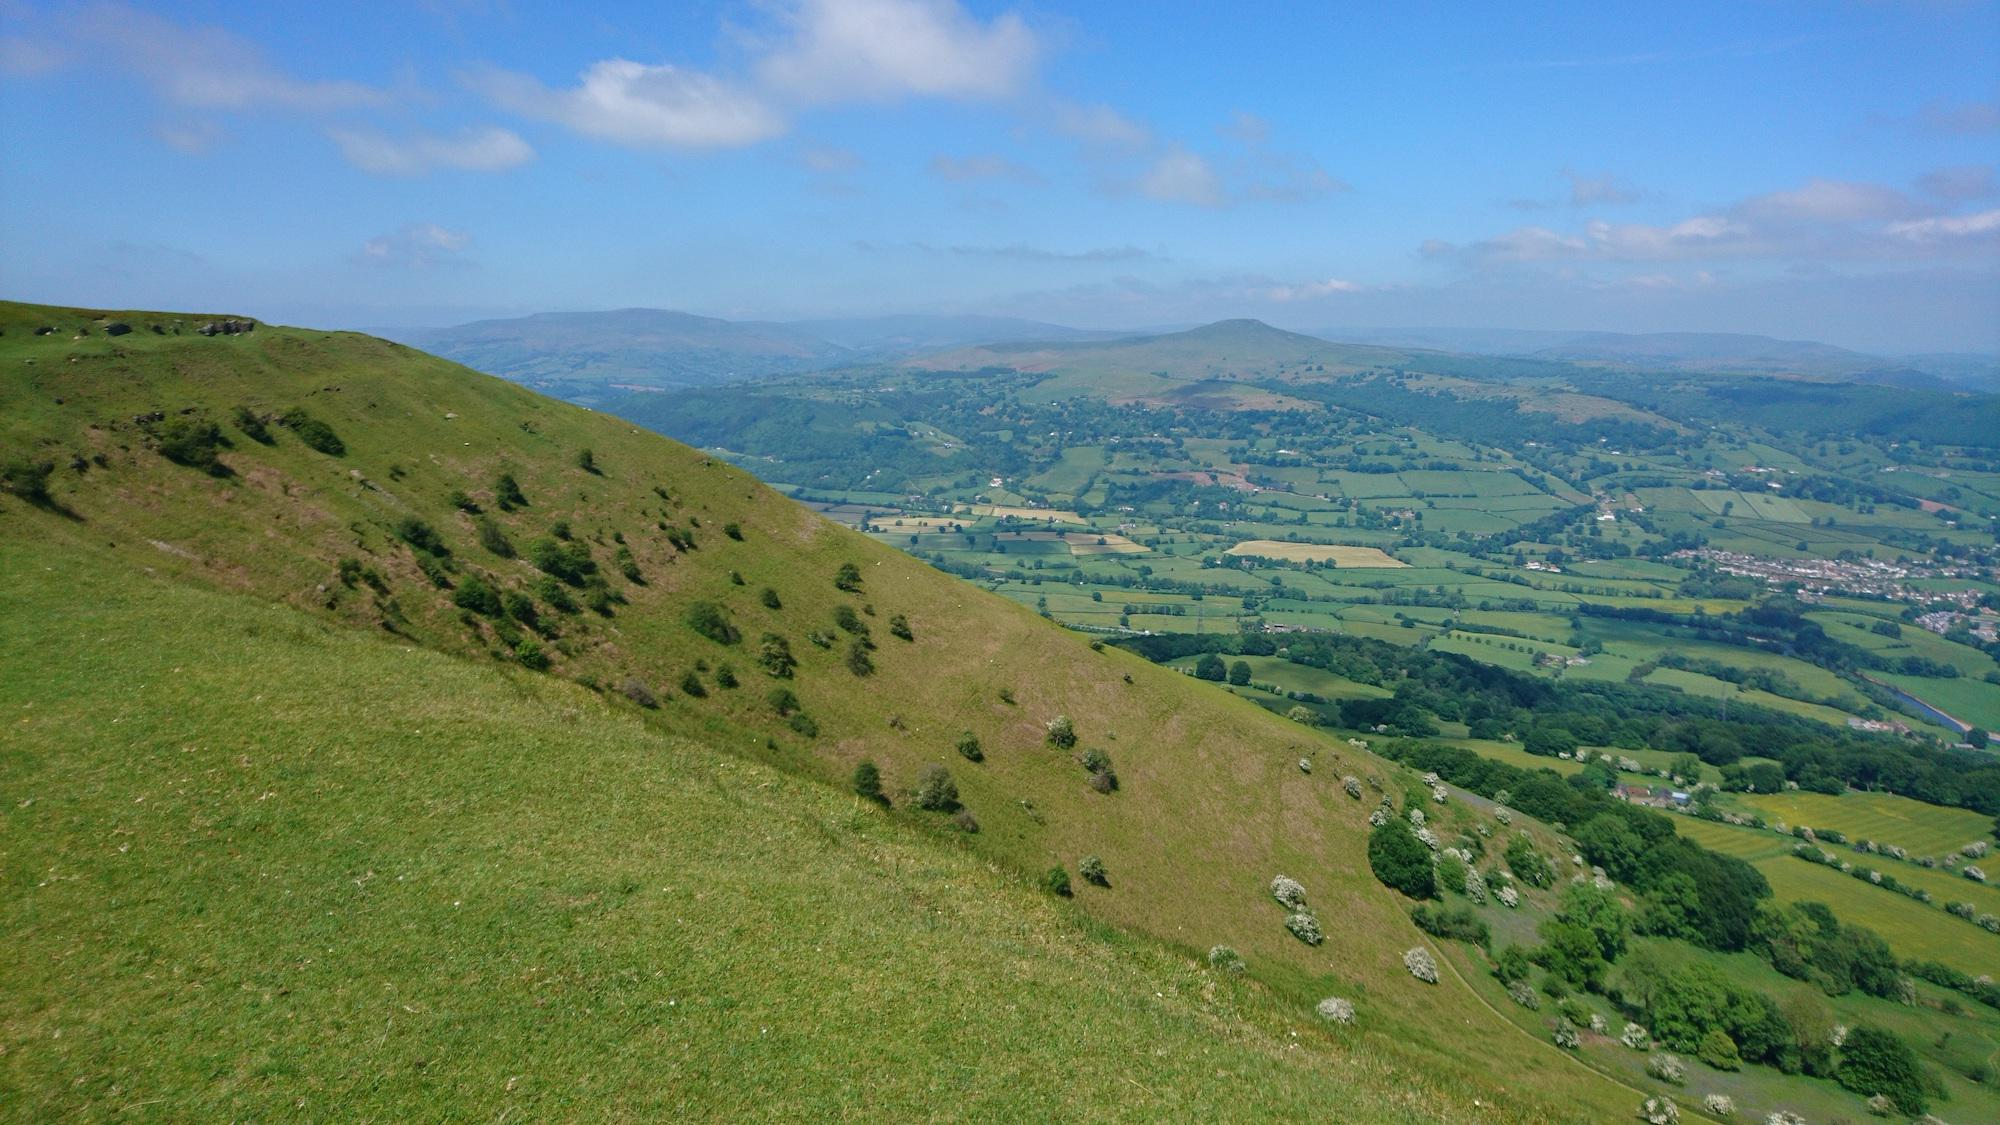 Abergavenny Camping | Best campsites in Abergavenny, Wales